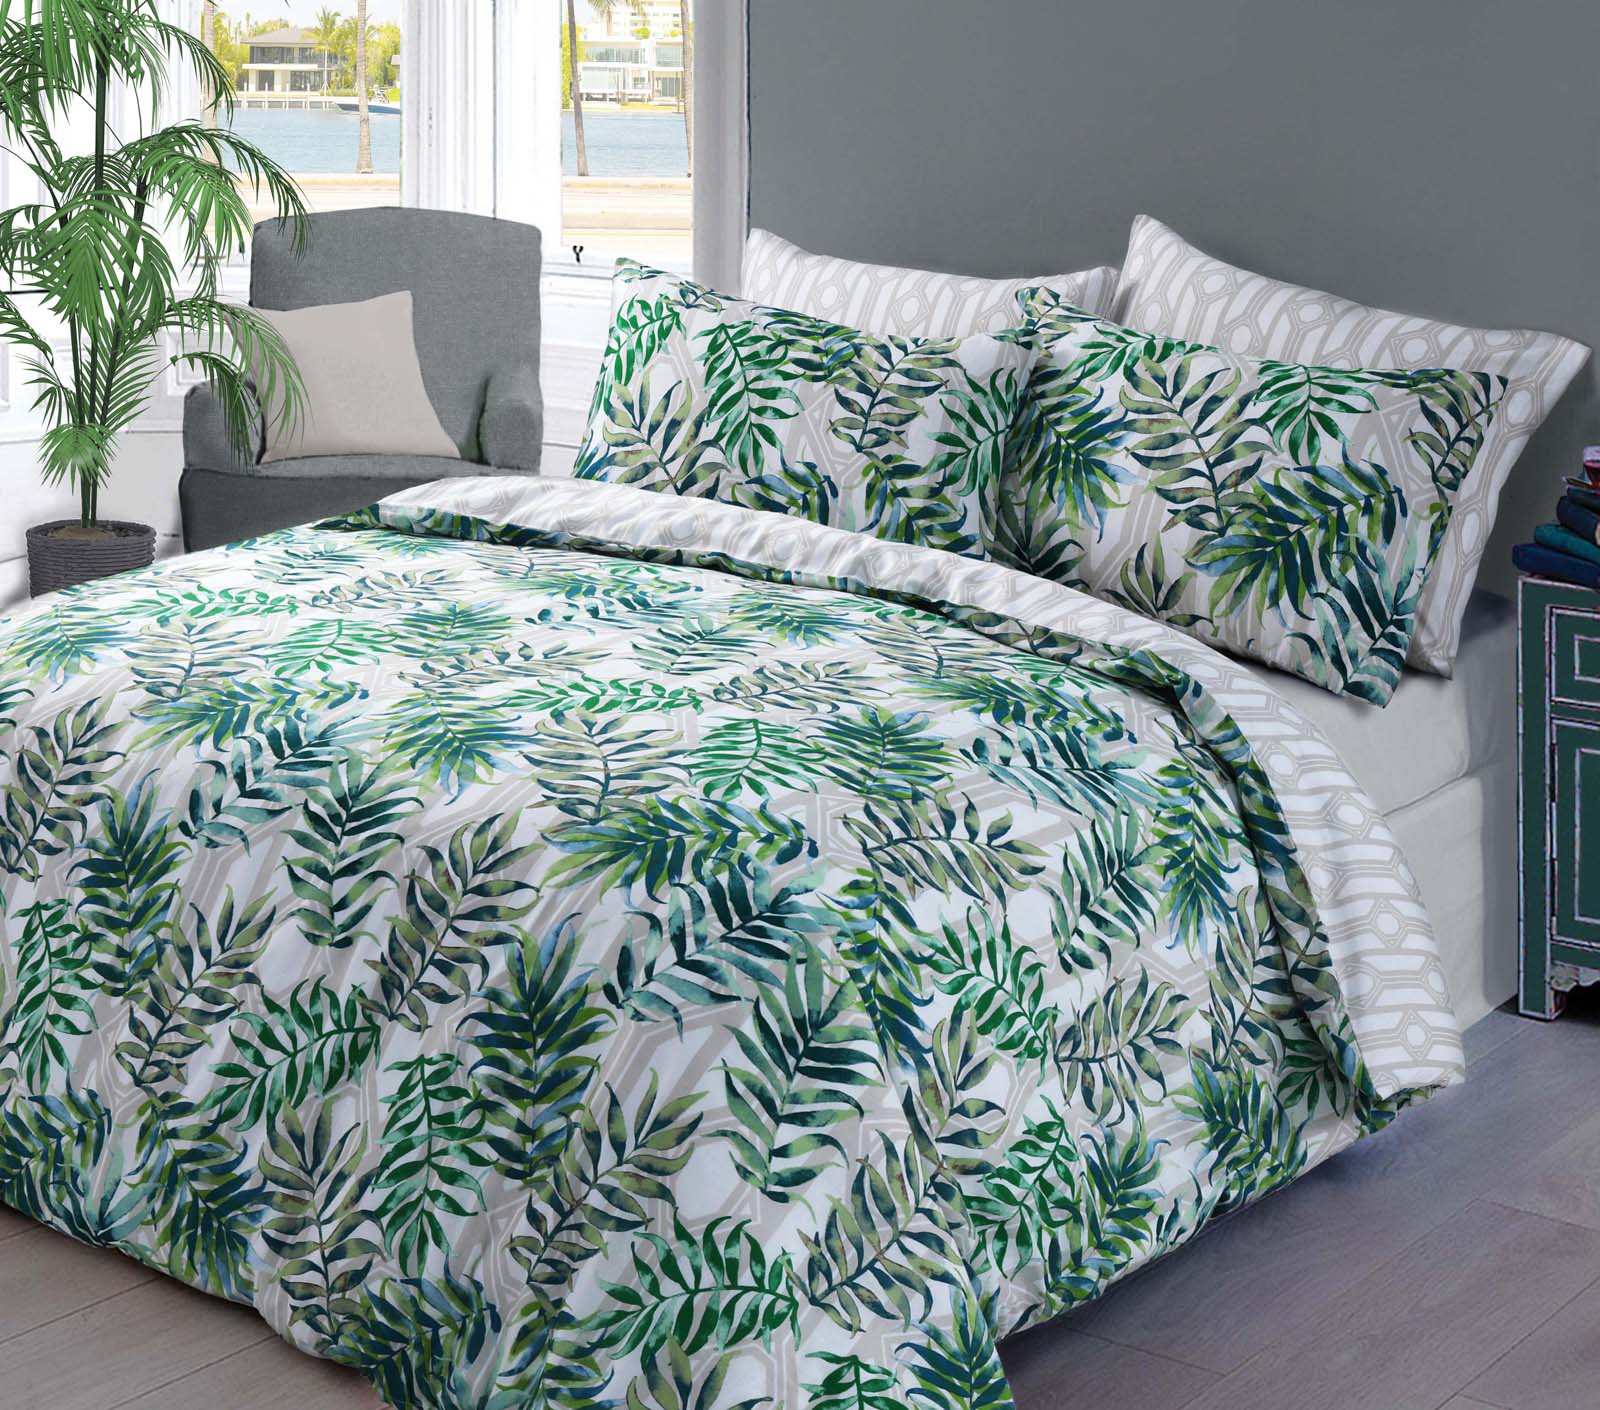 Single Palm Tree Bedding